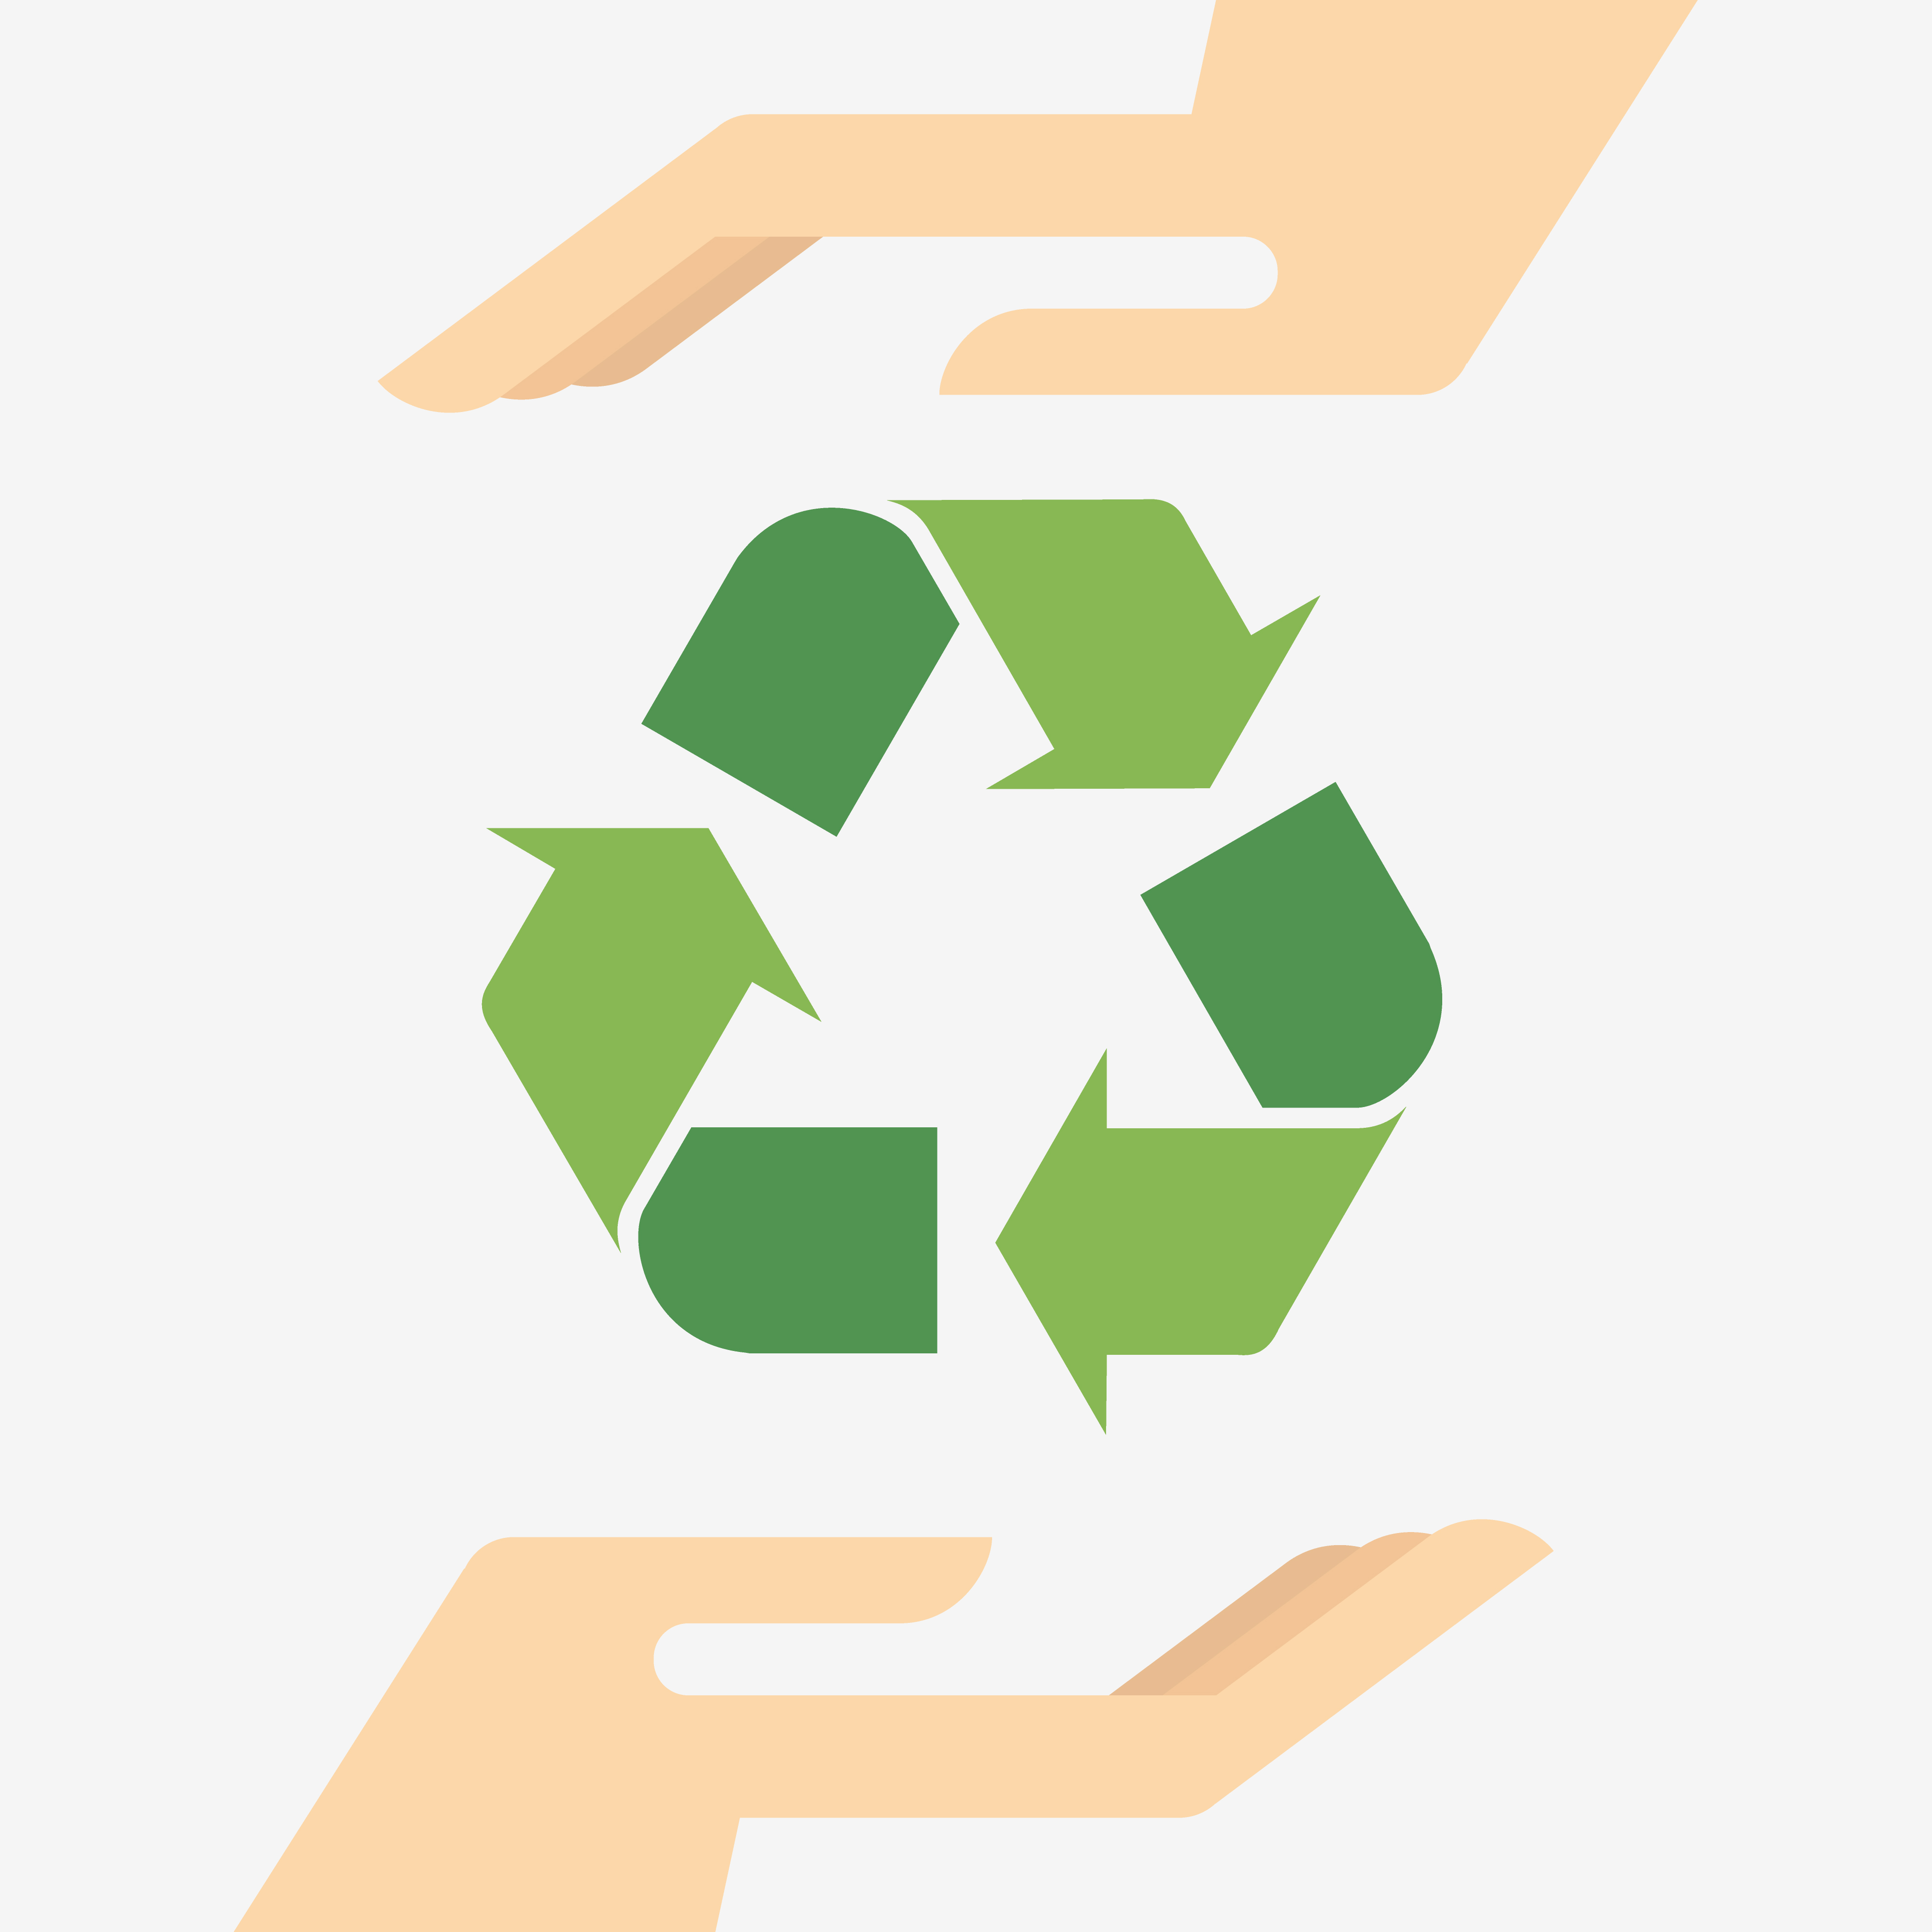 Recycle Free Vector Art 2570 Free Downloads